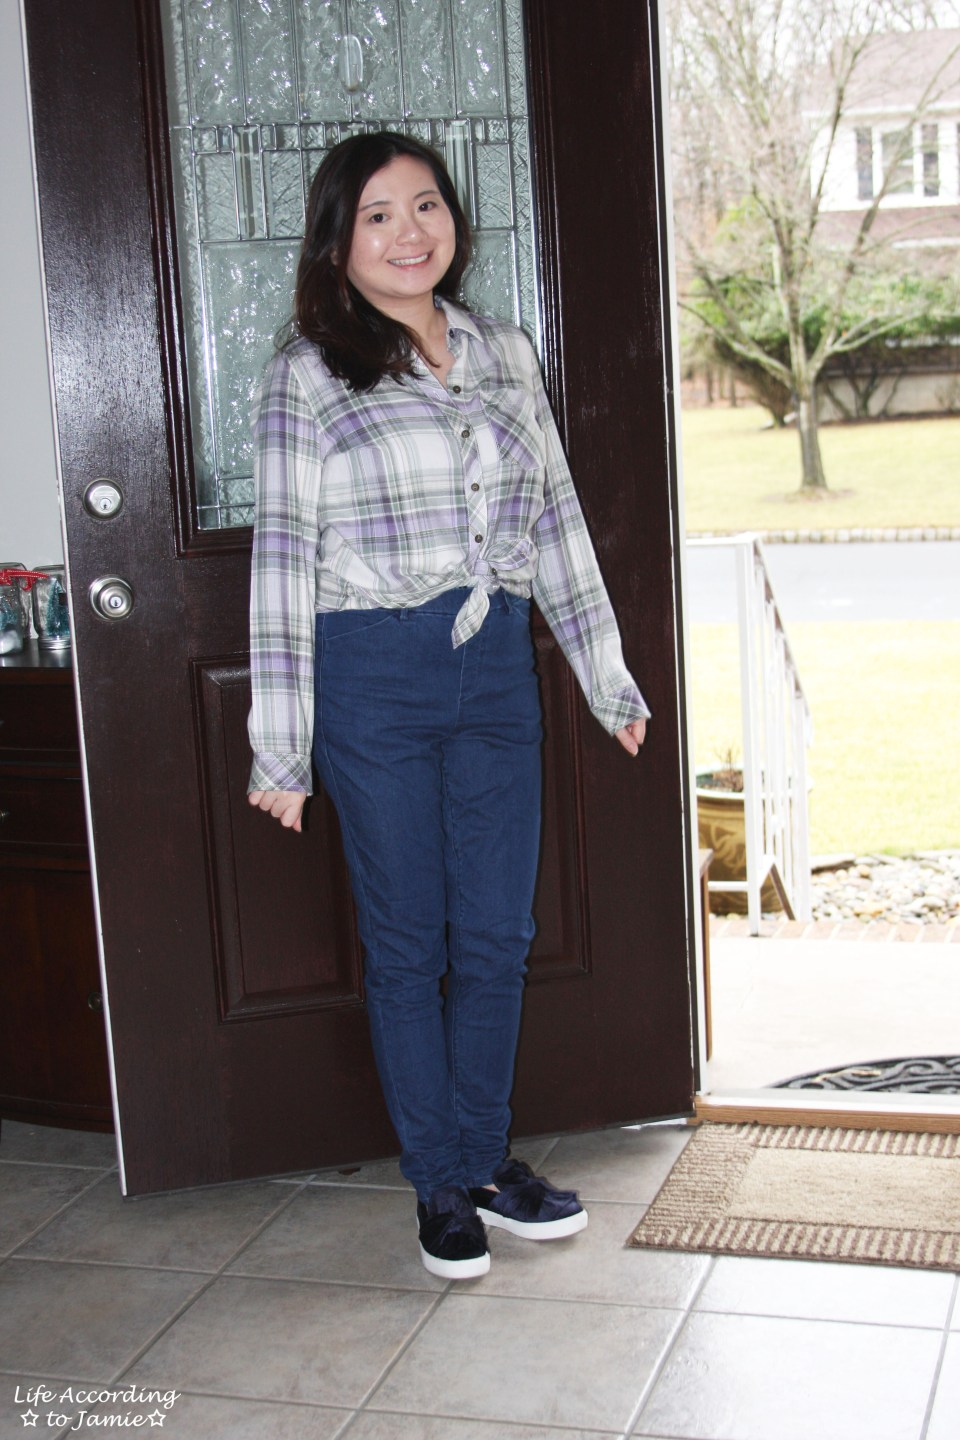 Tied Plaid Top + High Waisted Jeans 6